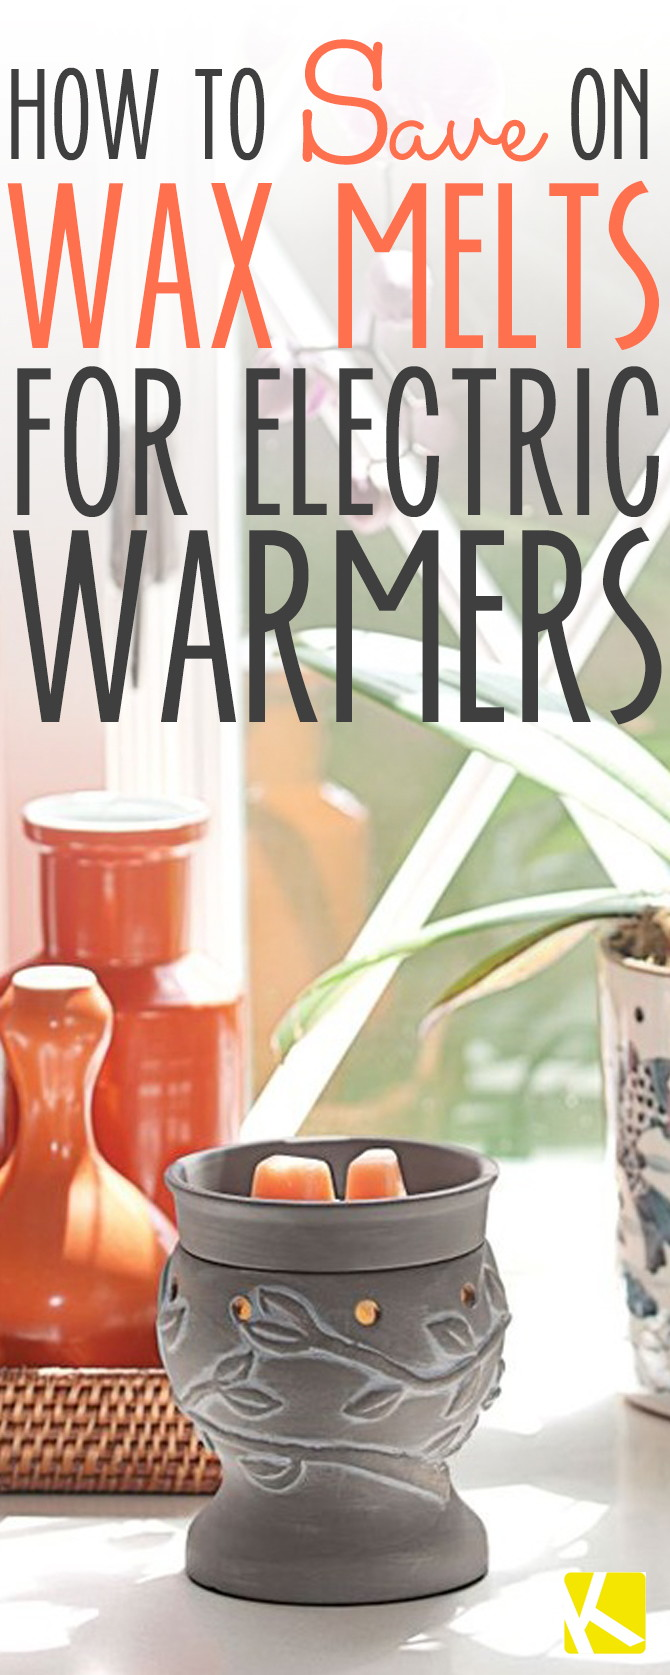 How to Save on Wax Melts for Electric Warmers